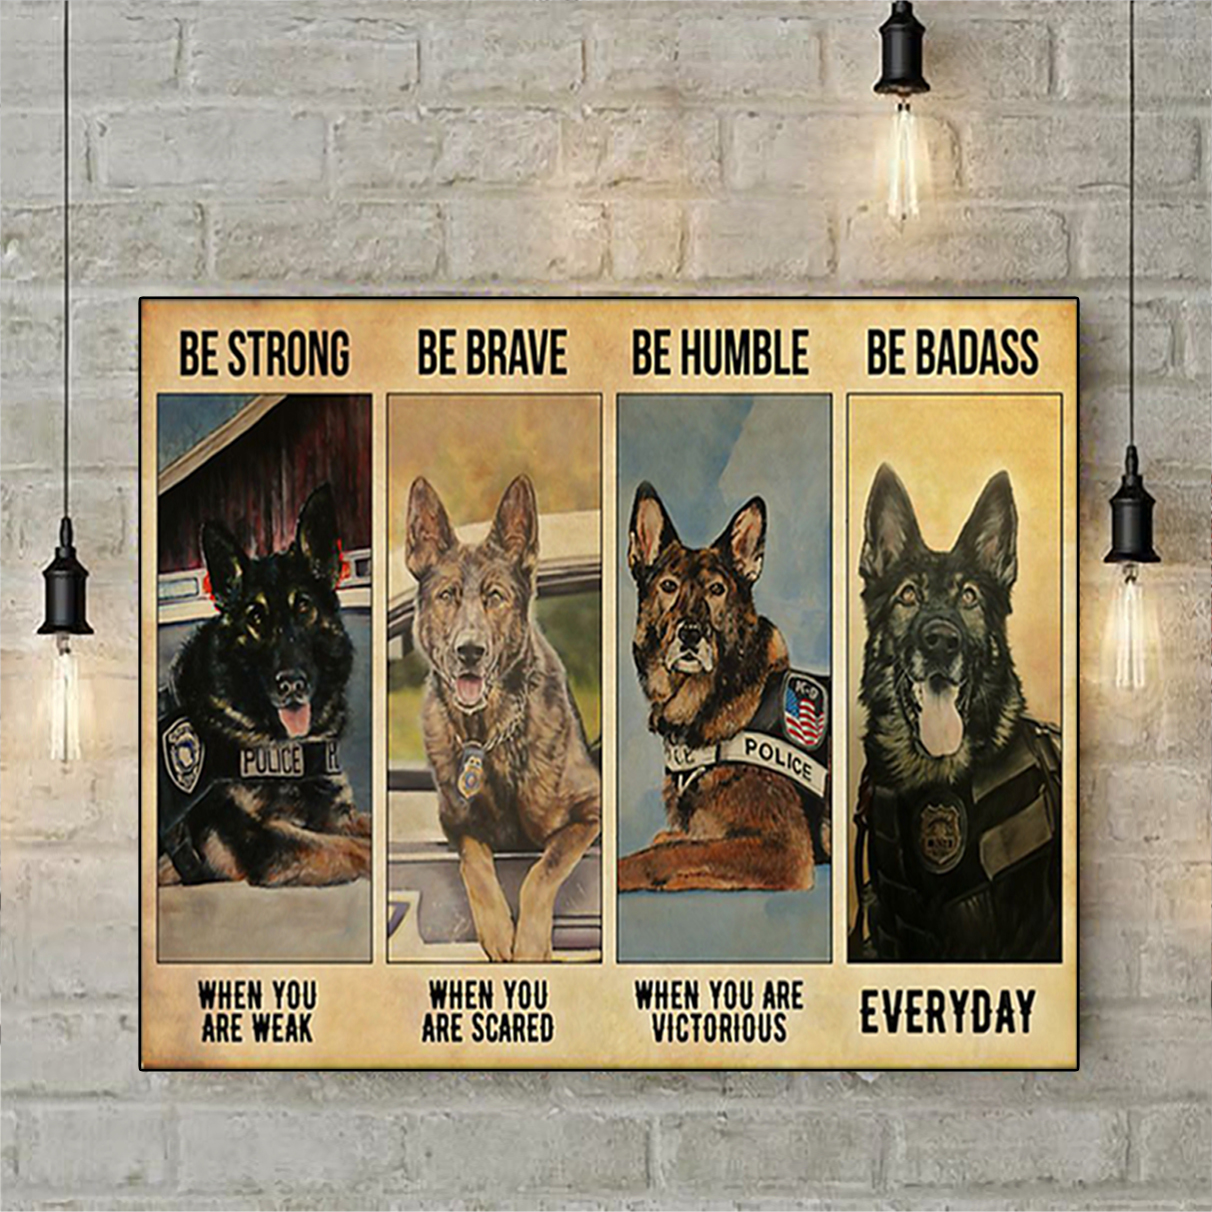 German shepherd police be strong be brave be humble be badass poster A3